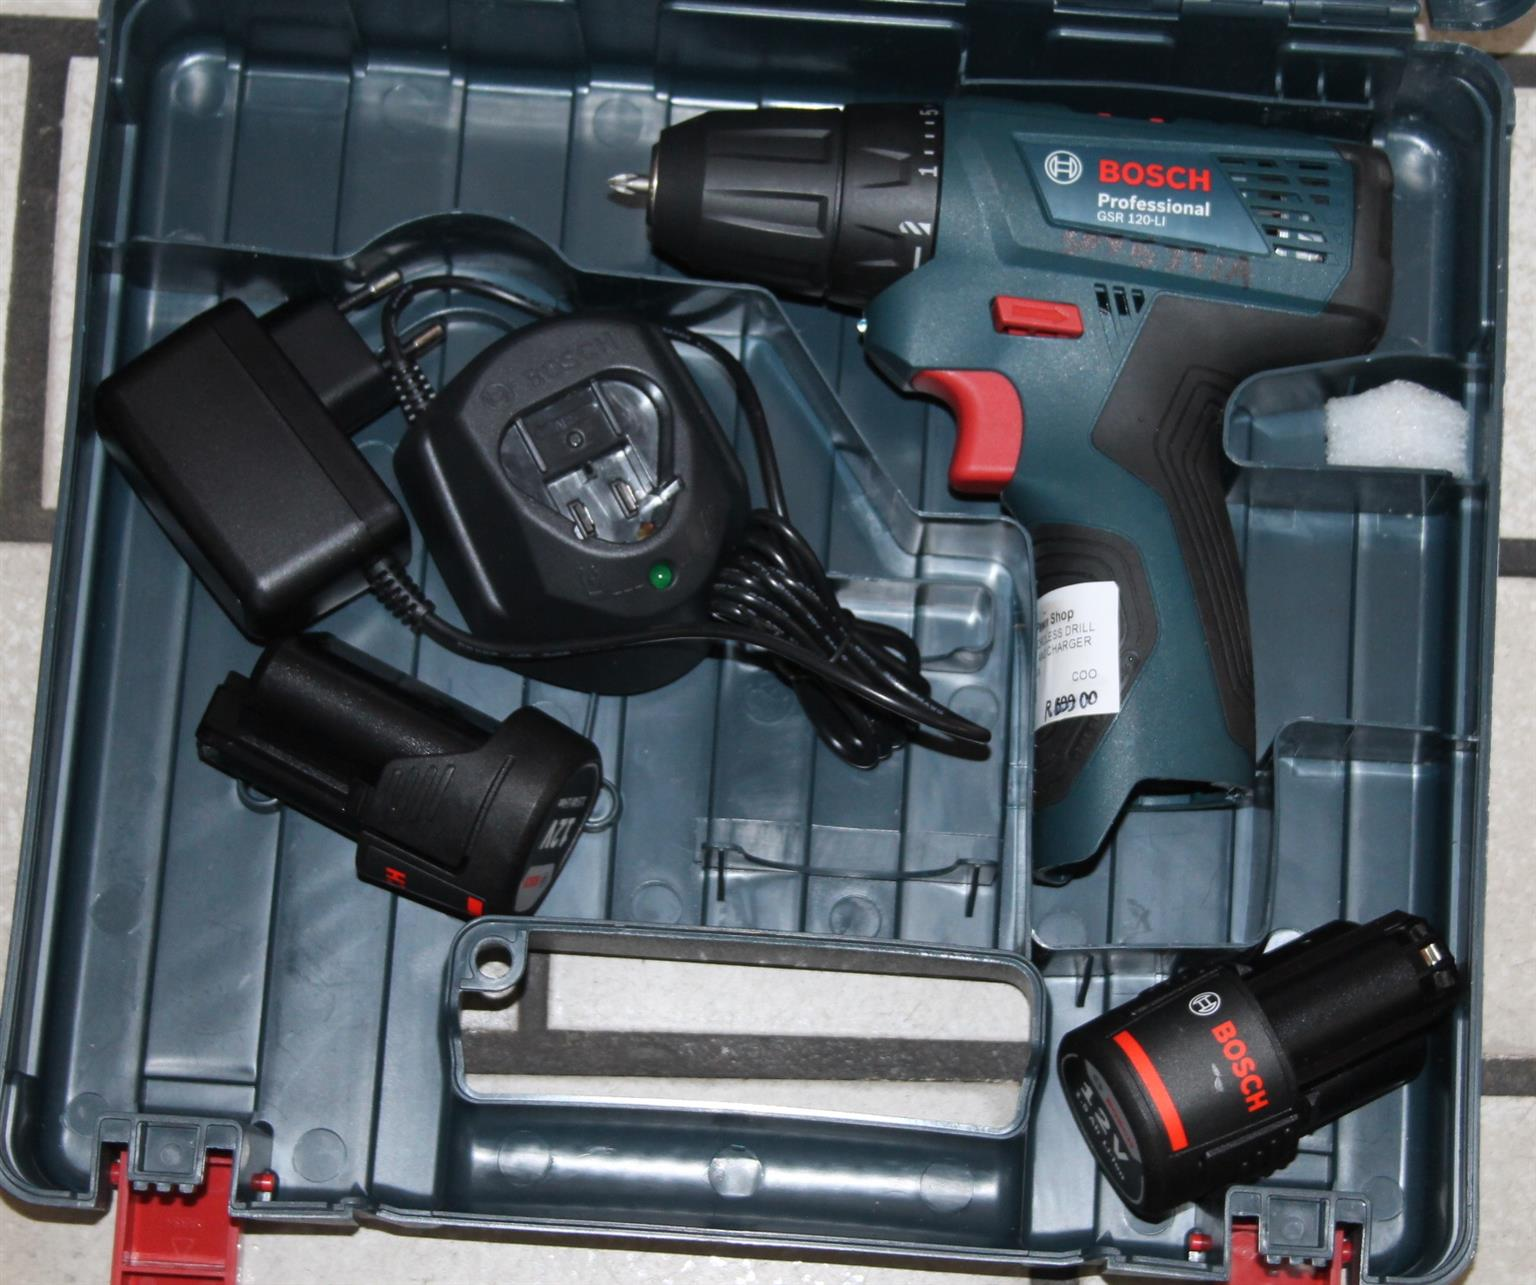 S035321A Bosch grs 120li cordless drill with extra battery and charger #Rosettenvillepawnshop